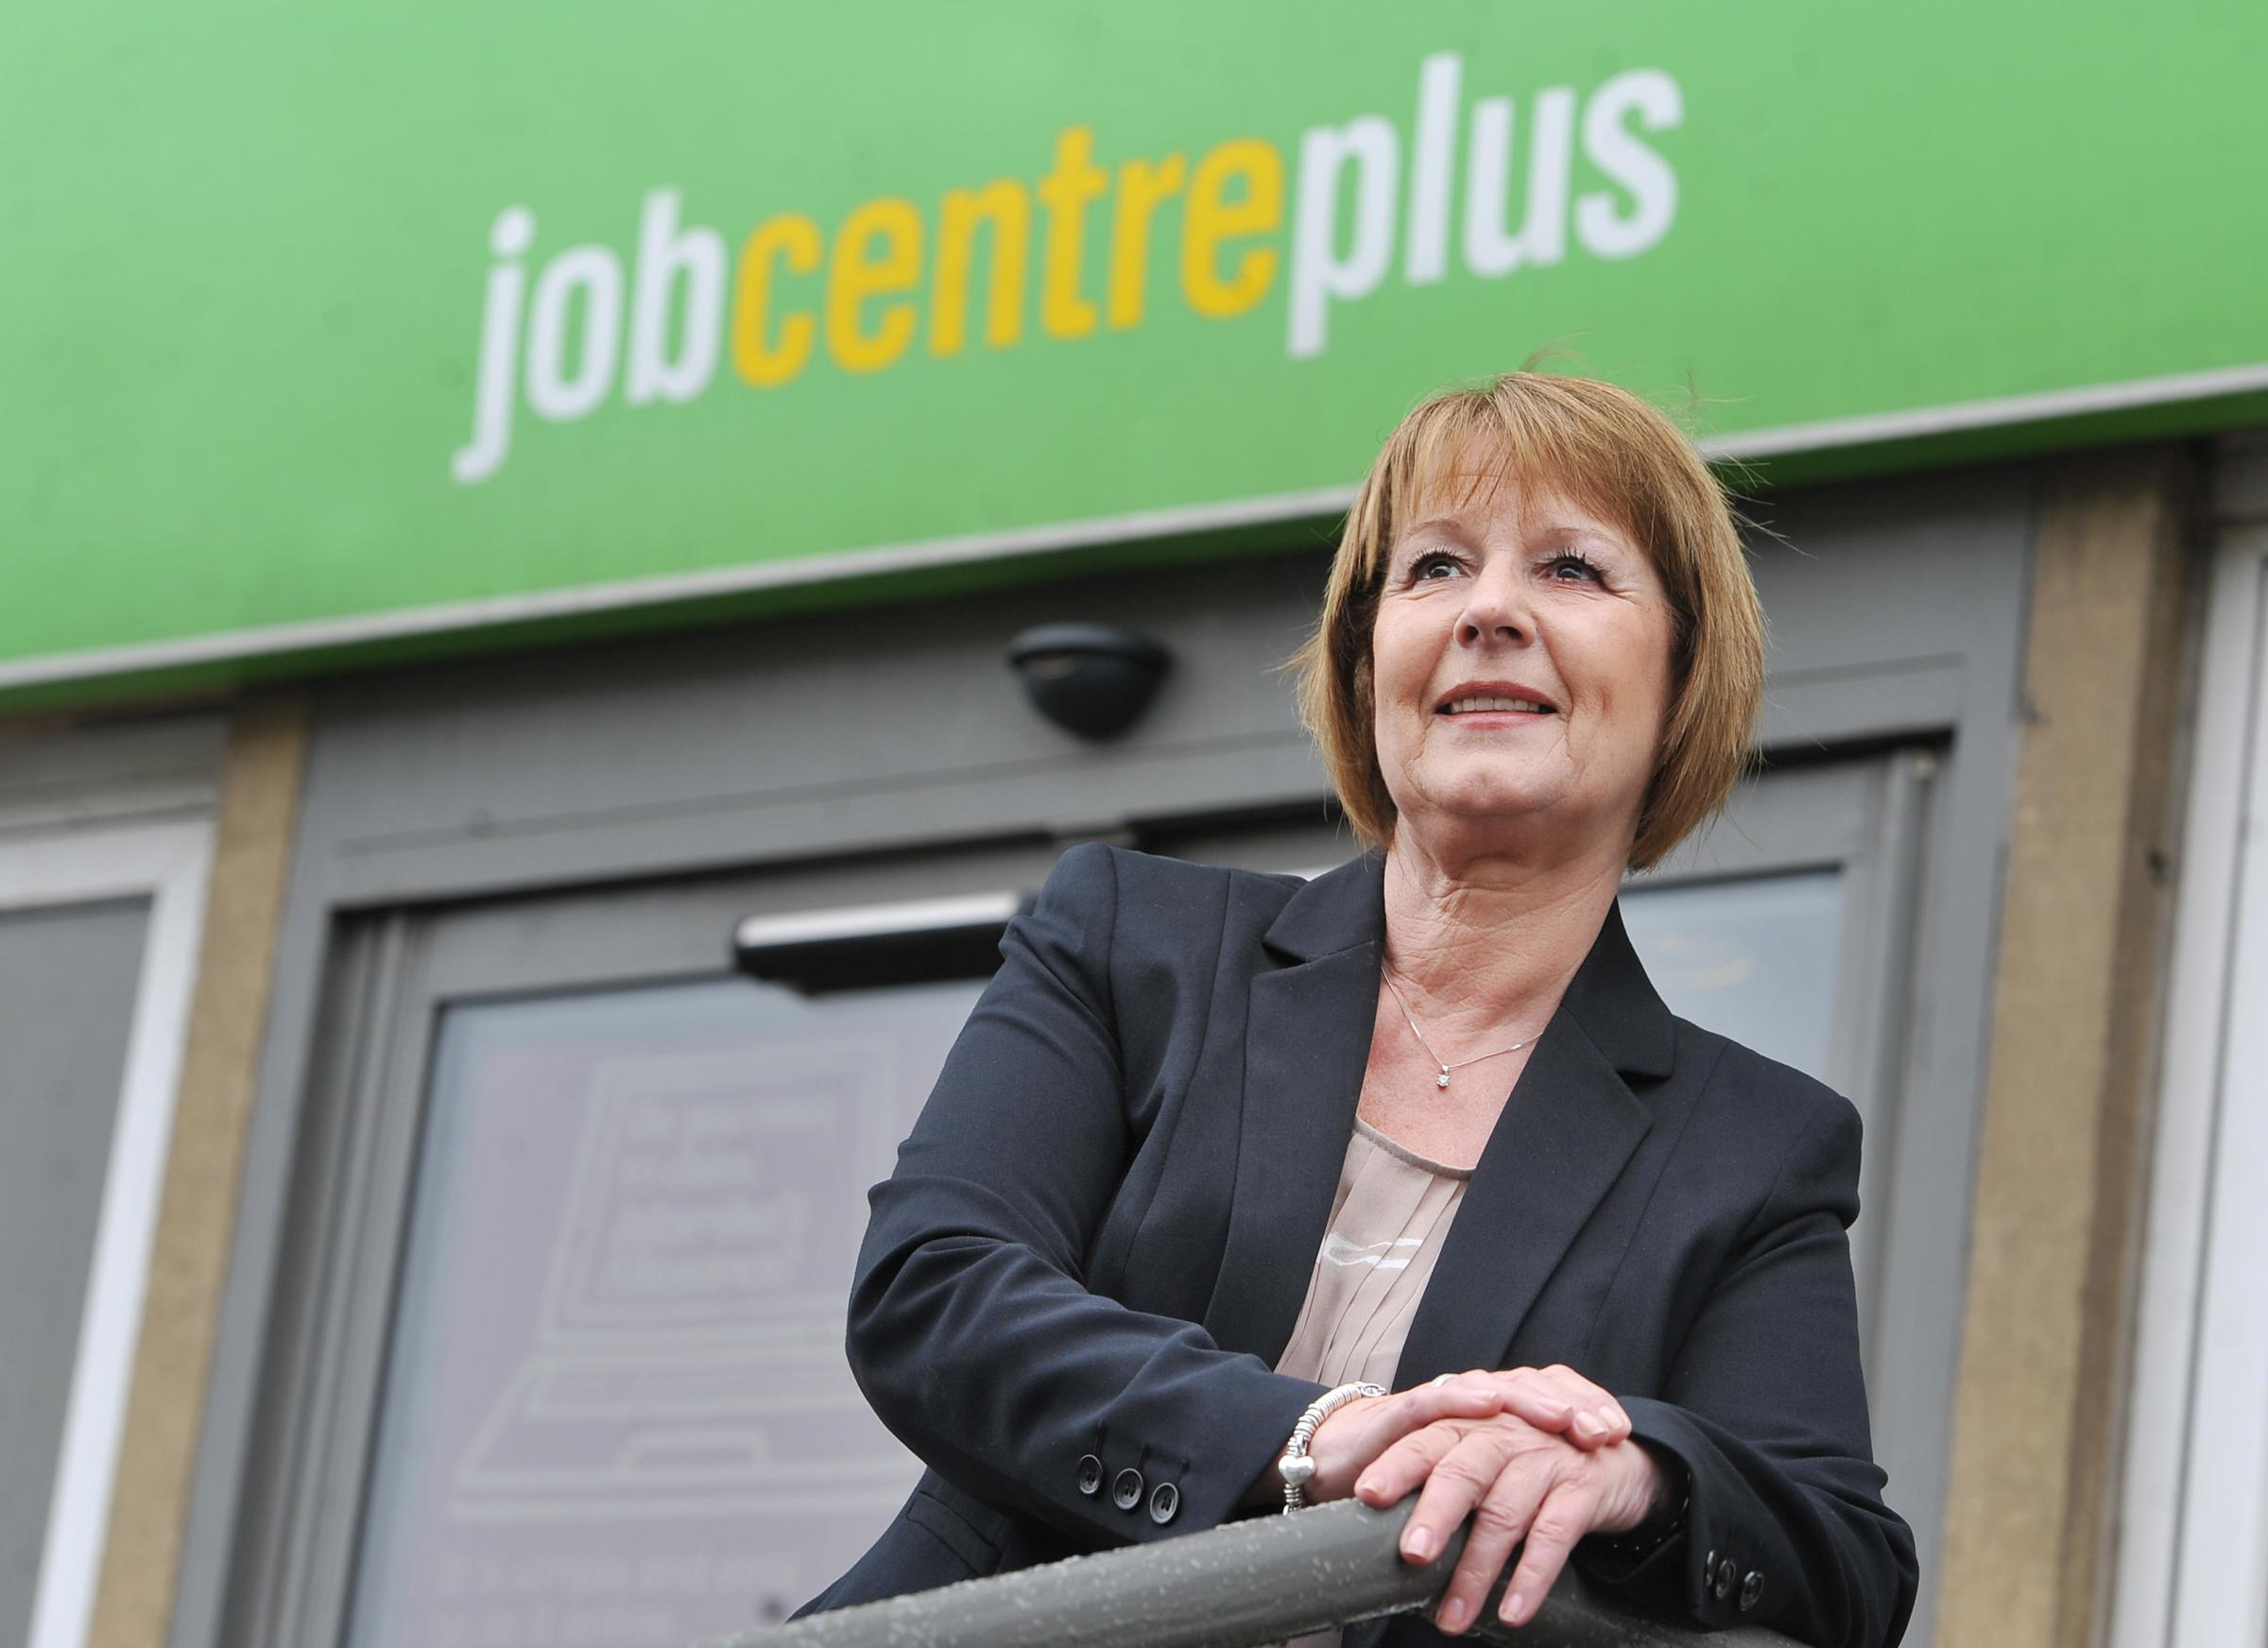 BREAKING THE CYCLE: employer and partnership manager, Diana Towler, at Bradford Job Centre on Manningham Lane, where work is being done locally to get jobseekers trained